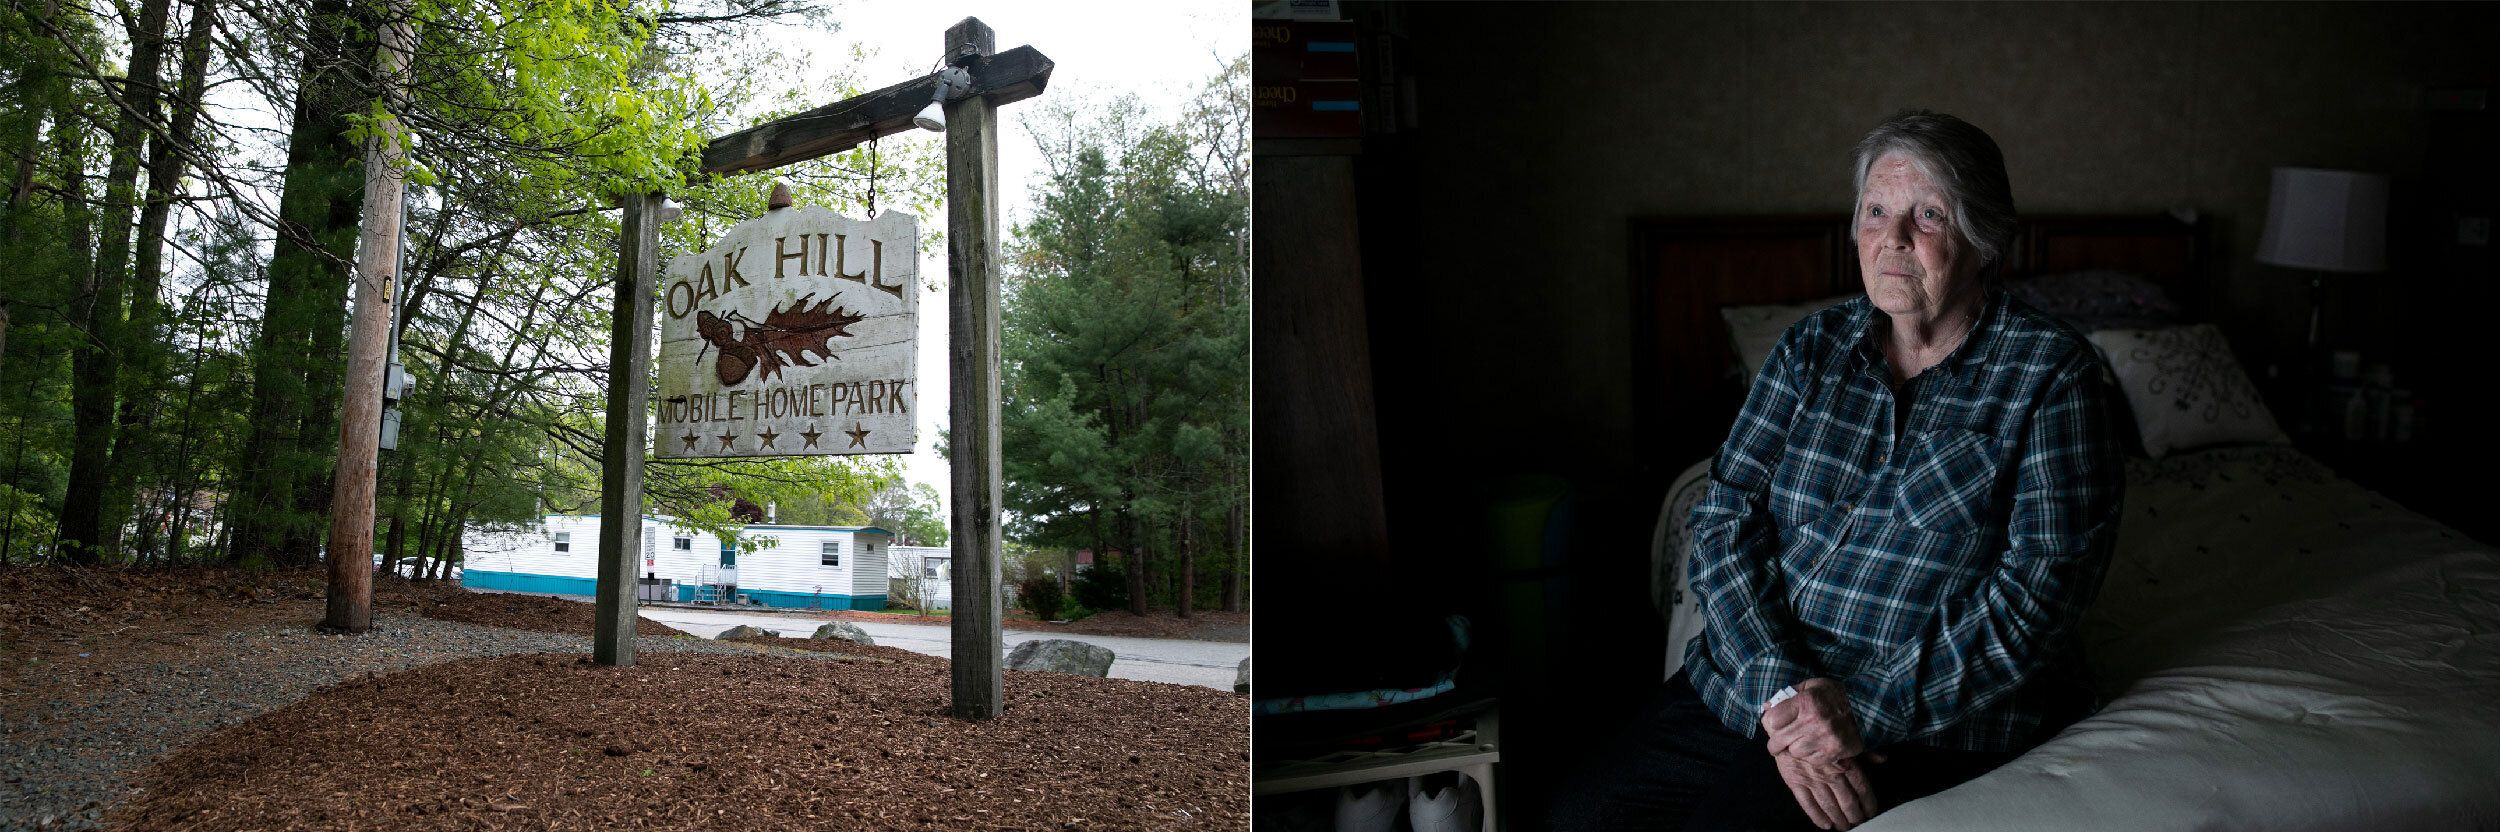 Left: The entrance to Oak Hill Mobile Home Park. Right: Kathy Zorotheos poses for a portrait inside her home in the resi